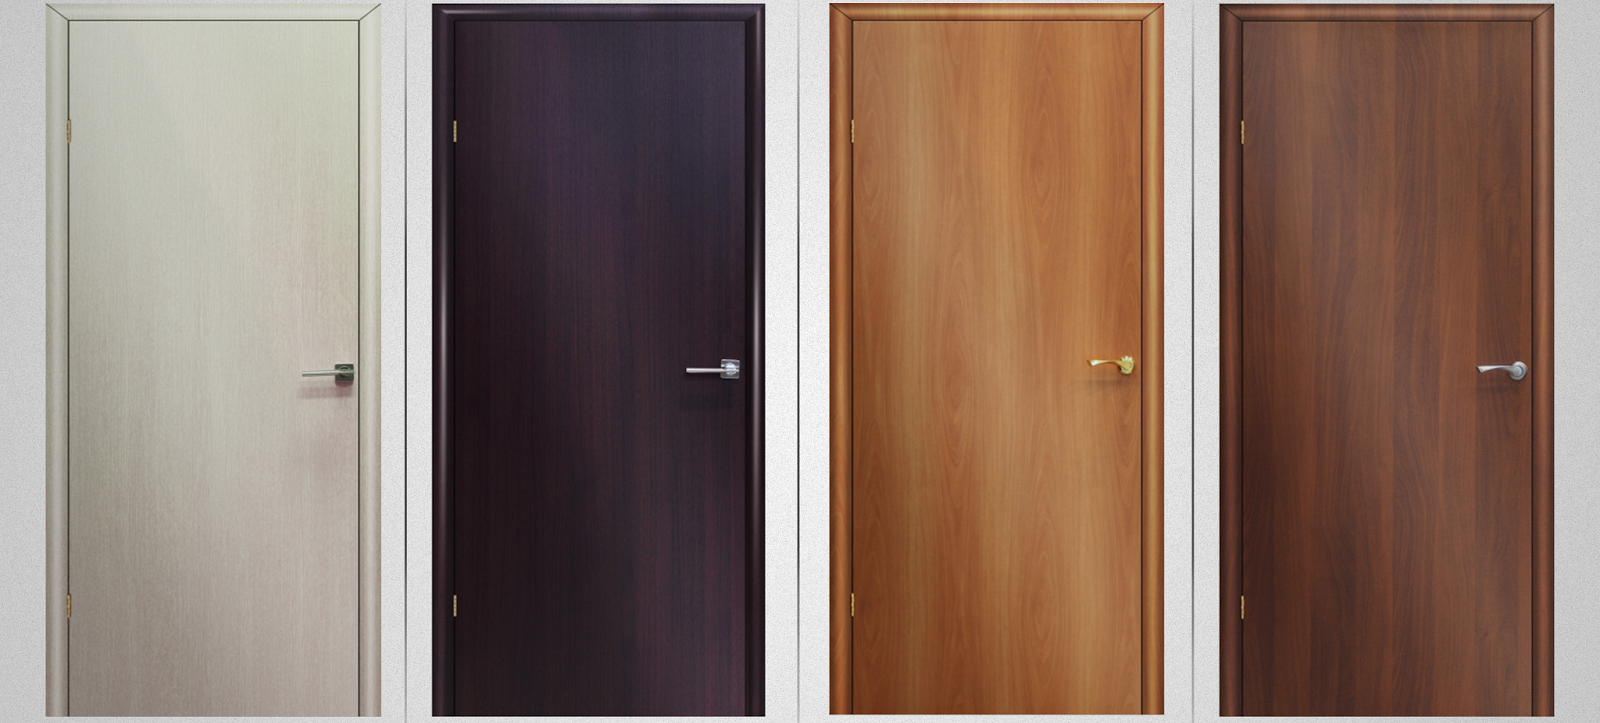 Different doors illustration of different designs of for Different door designs